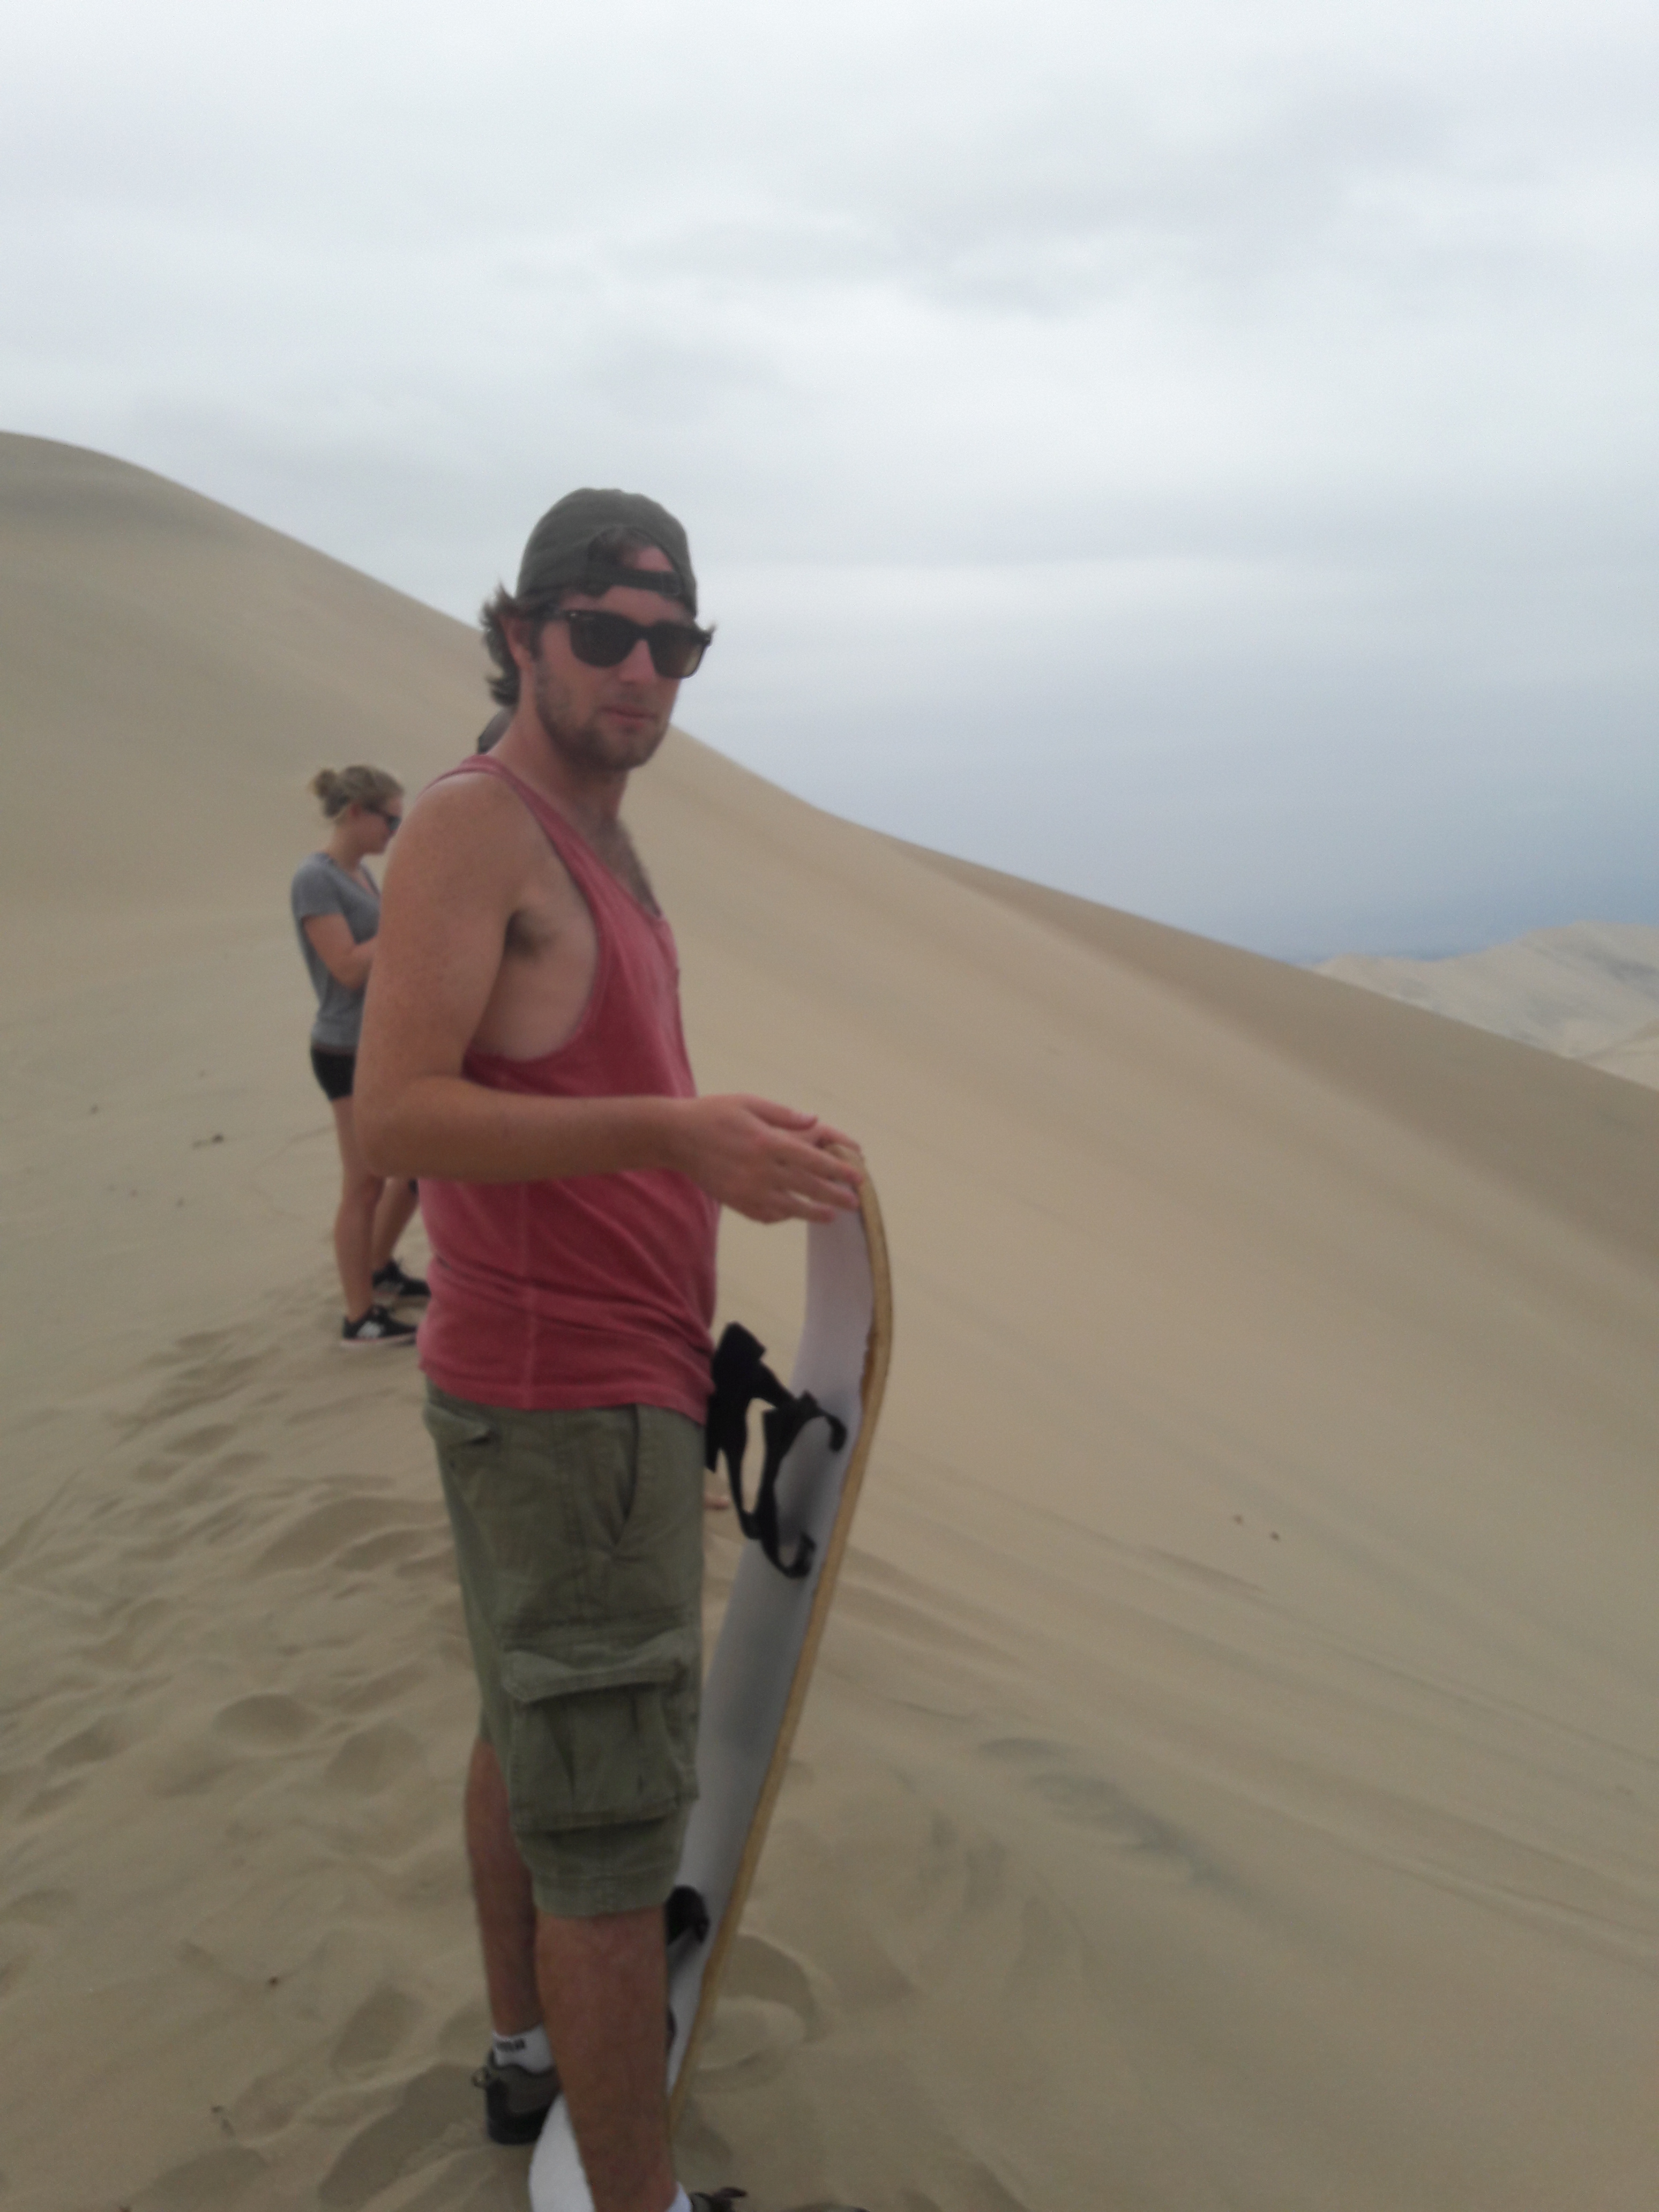 A man Sand boarding in Huacachina